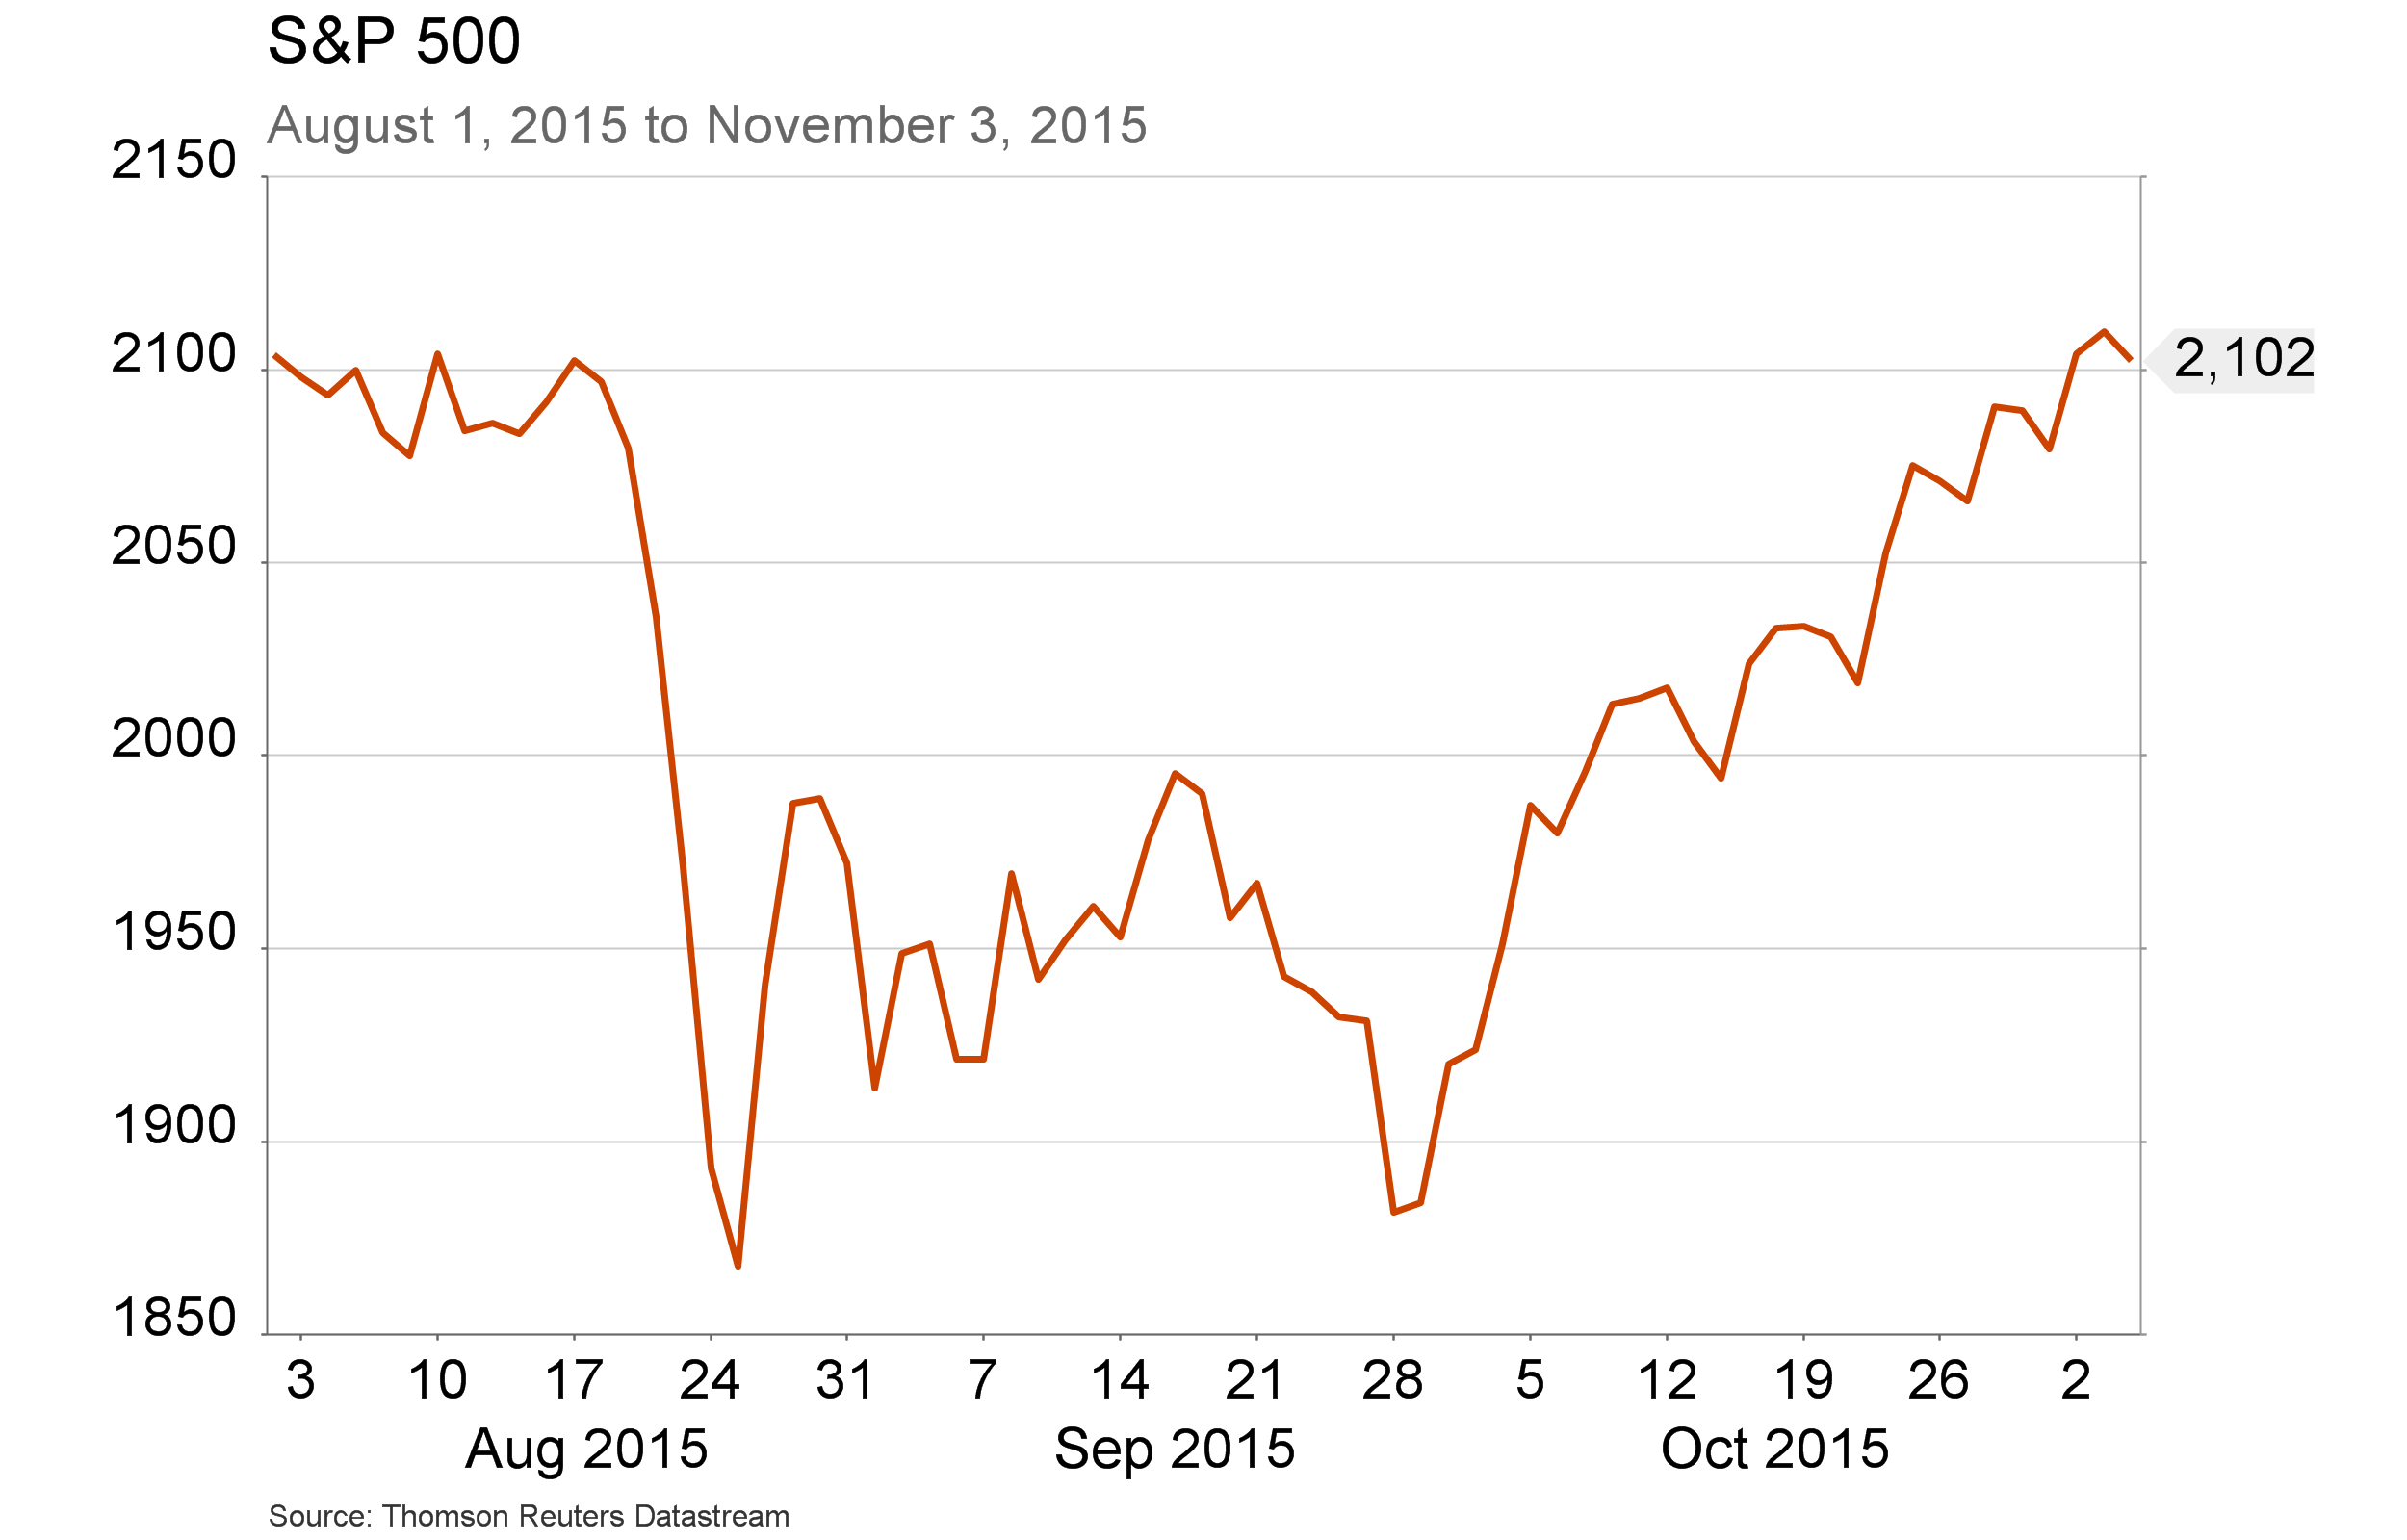 Conference Call charts - S&P 500 Nov 5 since August 1(1)